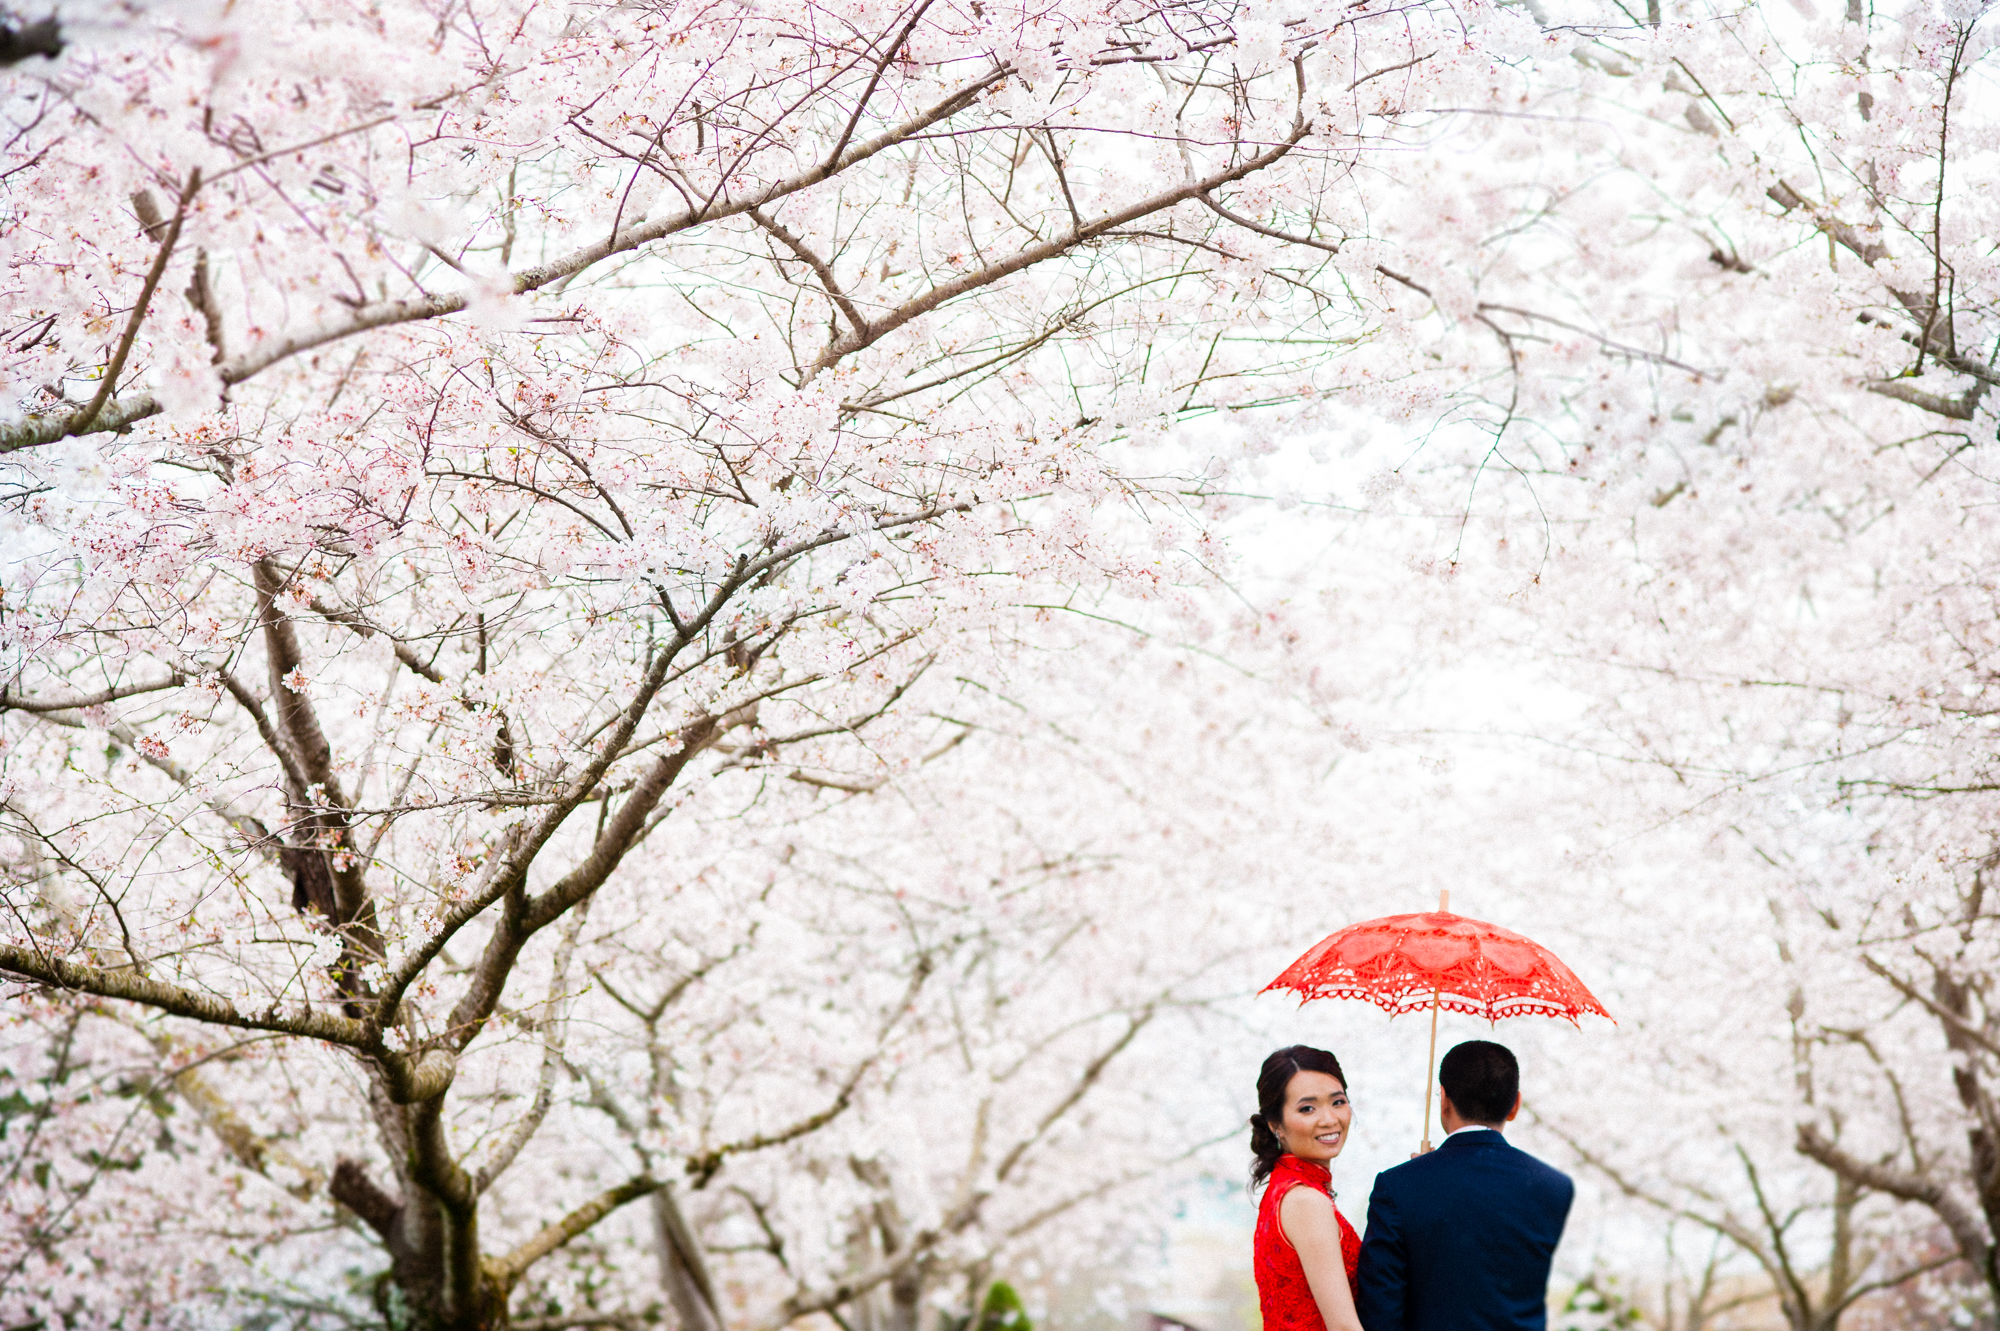 Chinese wedding portrait amongst cherry trees